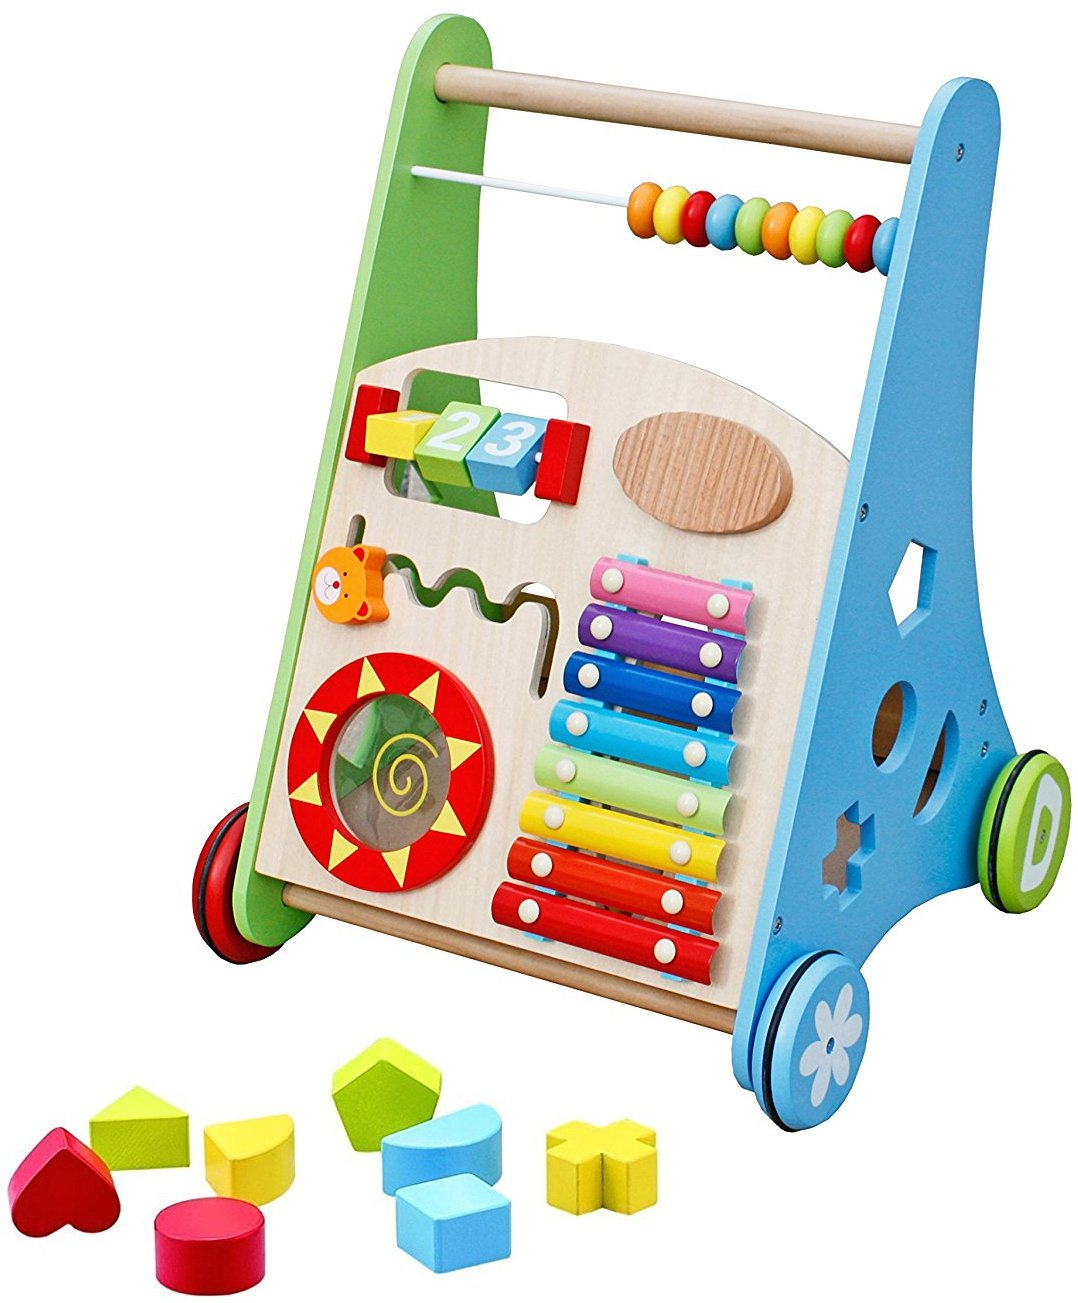 Pidoko Kids Block and Roll Cart - Wooden Push and Pull Baby Walker with Multiple Activity Centre by Pidoko Kids (Image #1)